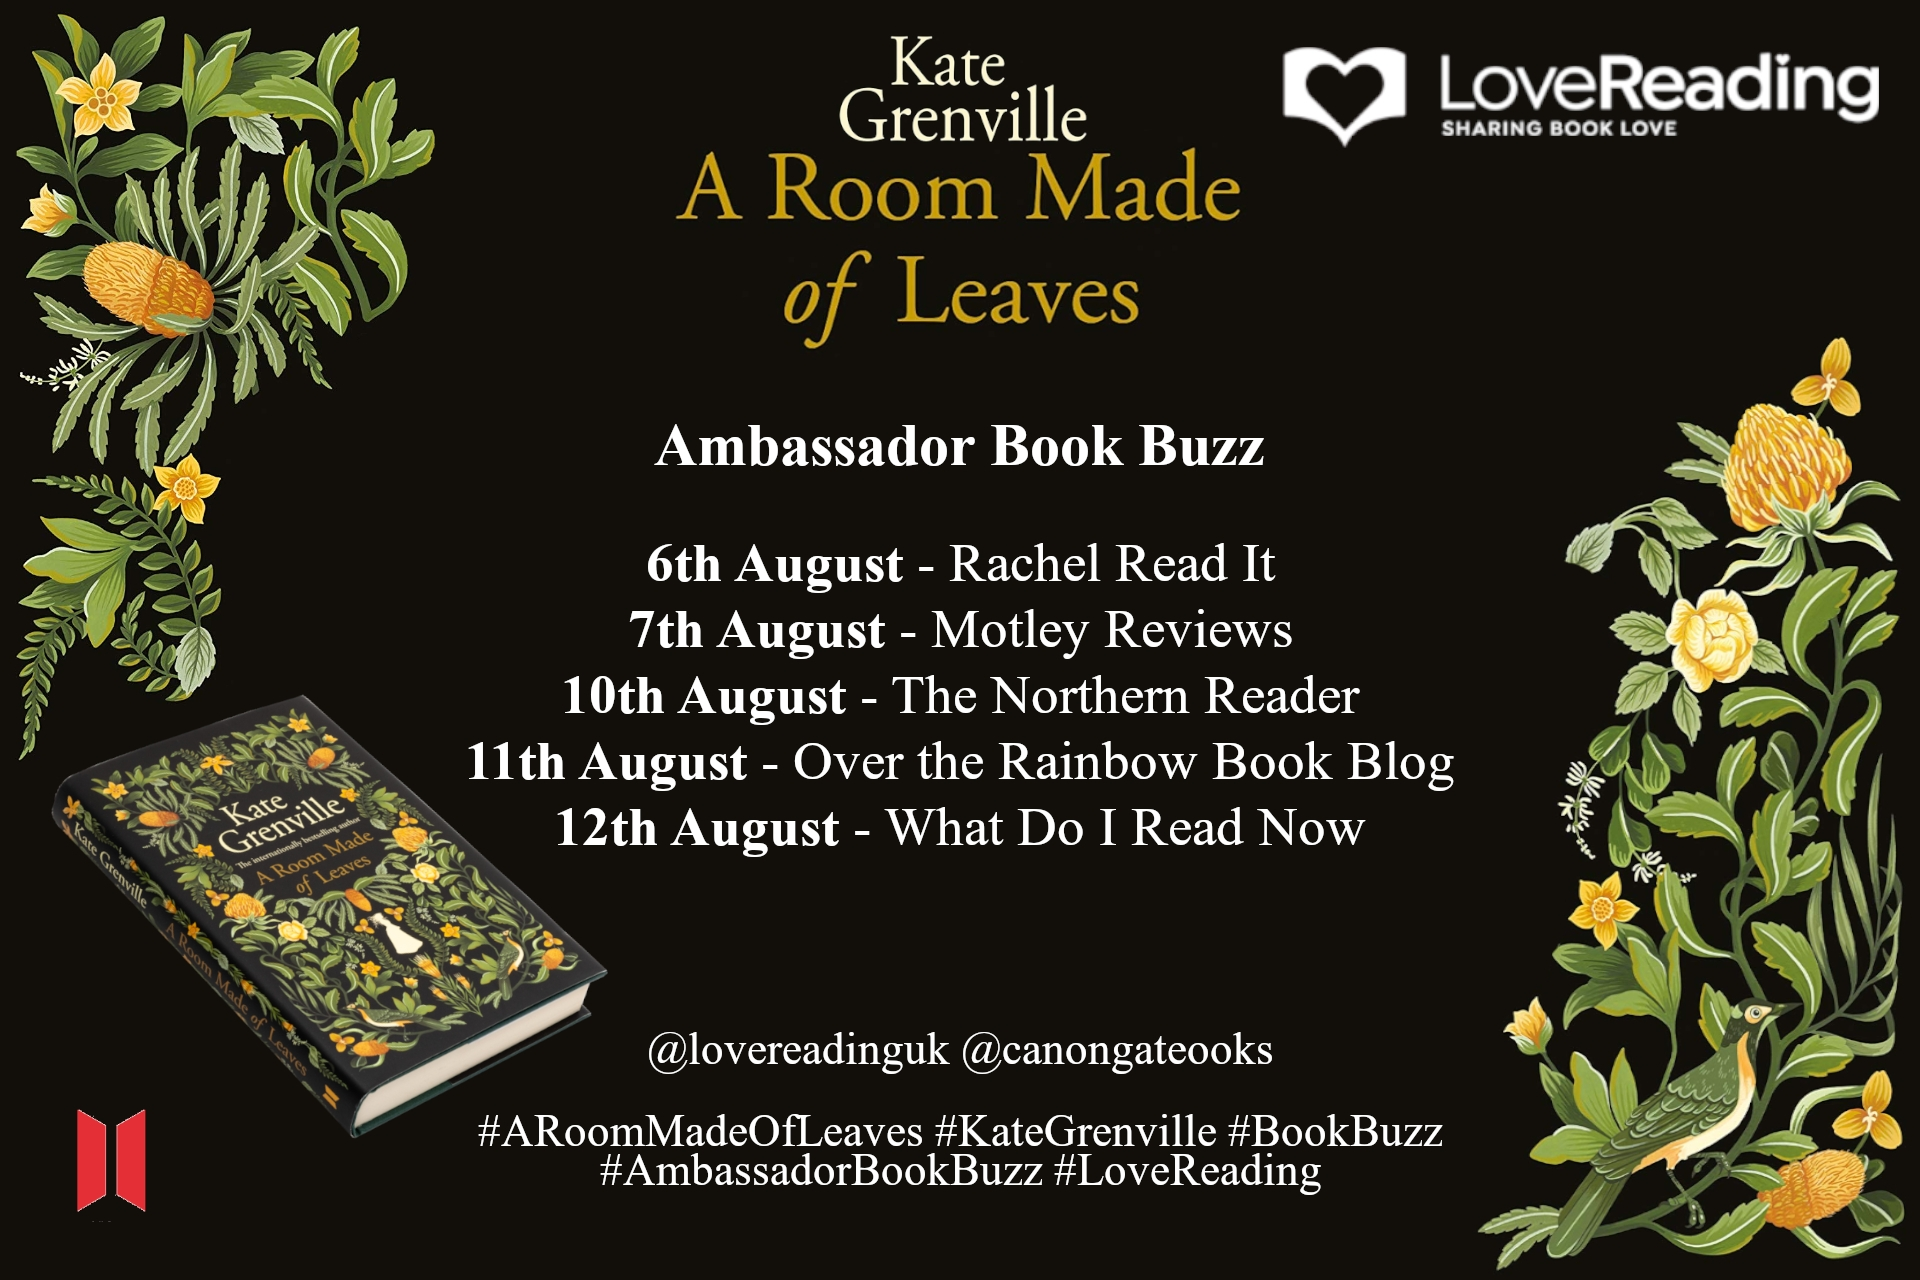 Ambassador Book Buzz: A Room Made of Leaves by Kate Grenville